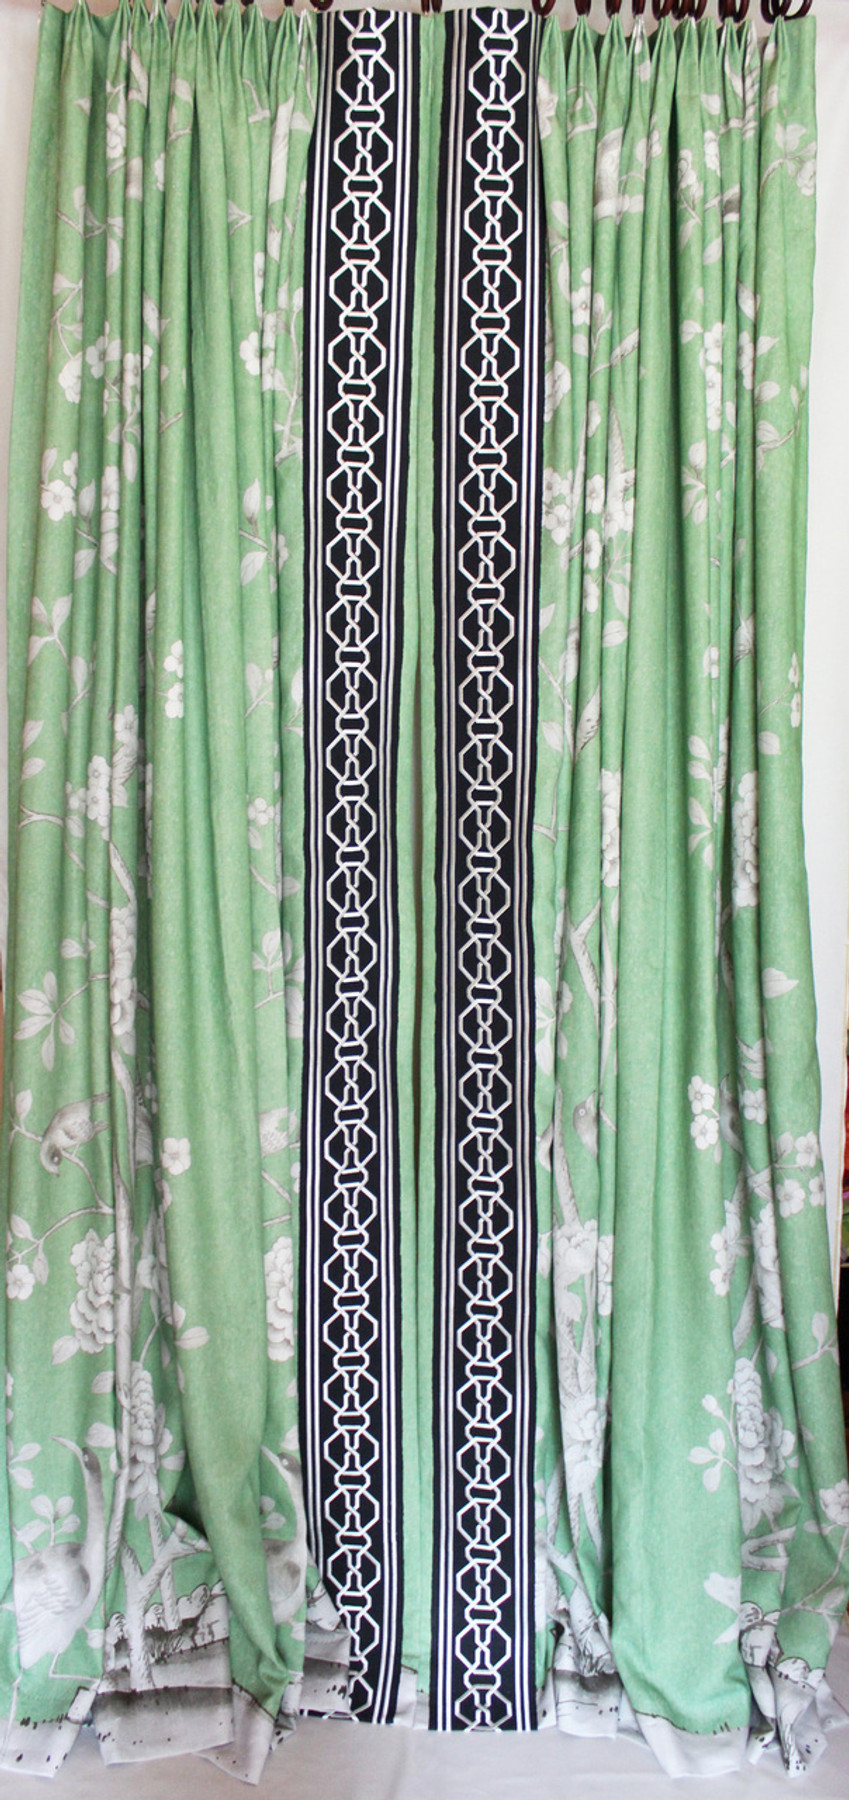 Custom Drapes by Lynn Chalk in Mary McDonald Chinois Palais in  Lettuce trimmed in Malmaison Tape in Noir.